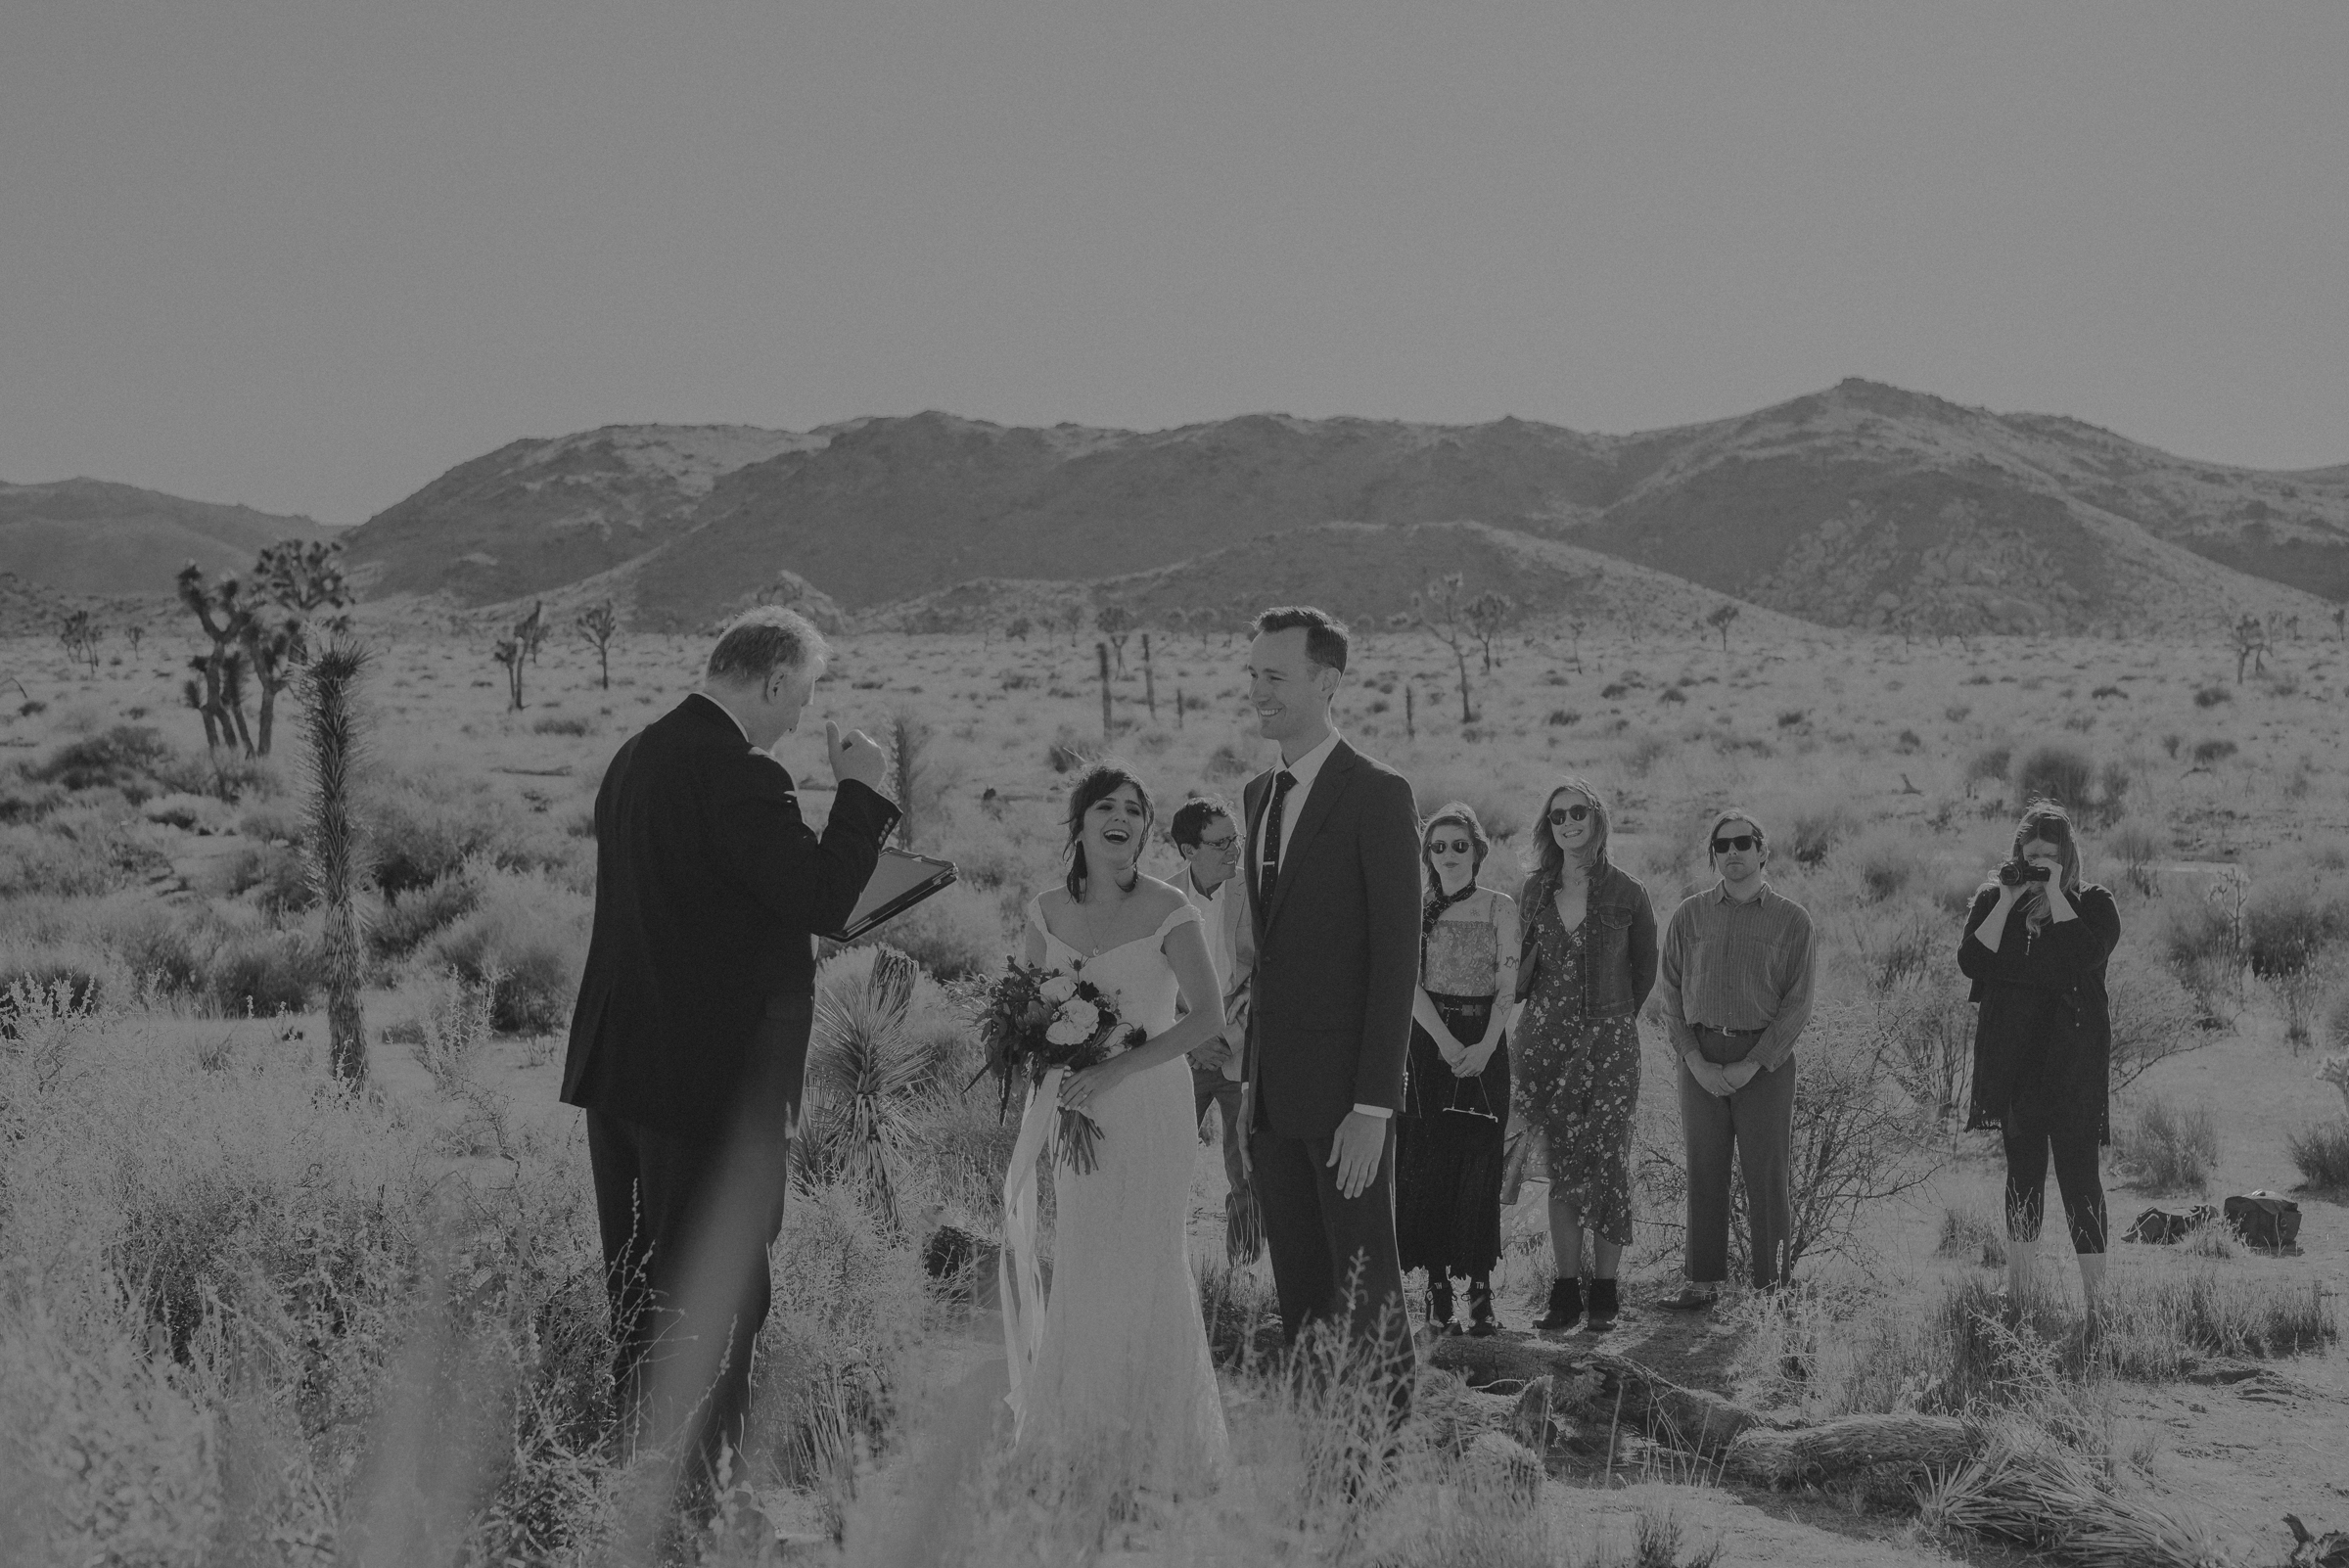 Joshua Tree Elopement - Los Angeles Wedding Photographers - IsaiahAndTaylor.com-024.jpg